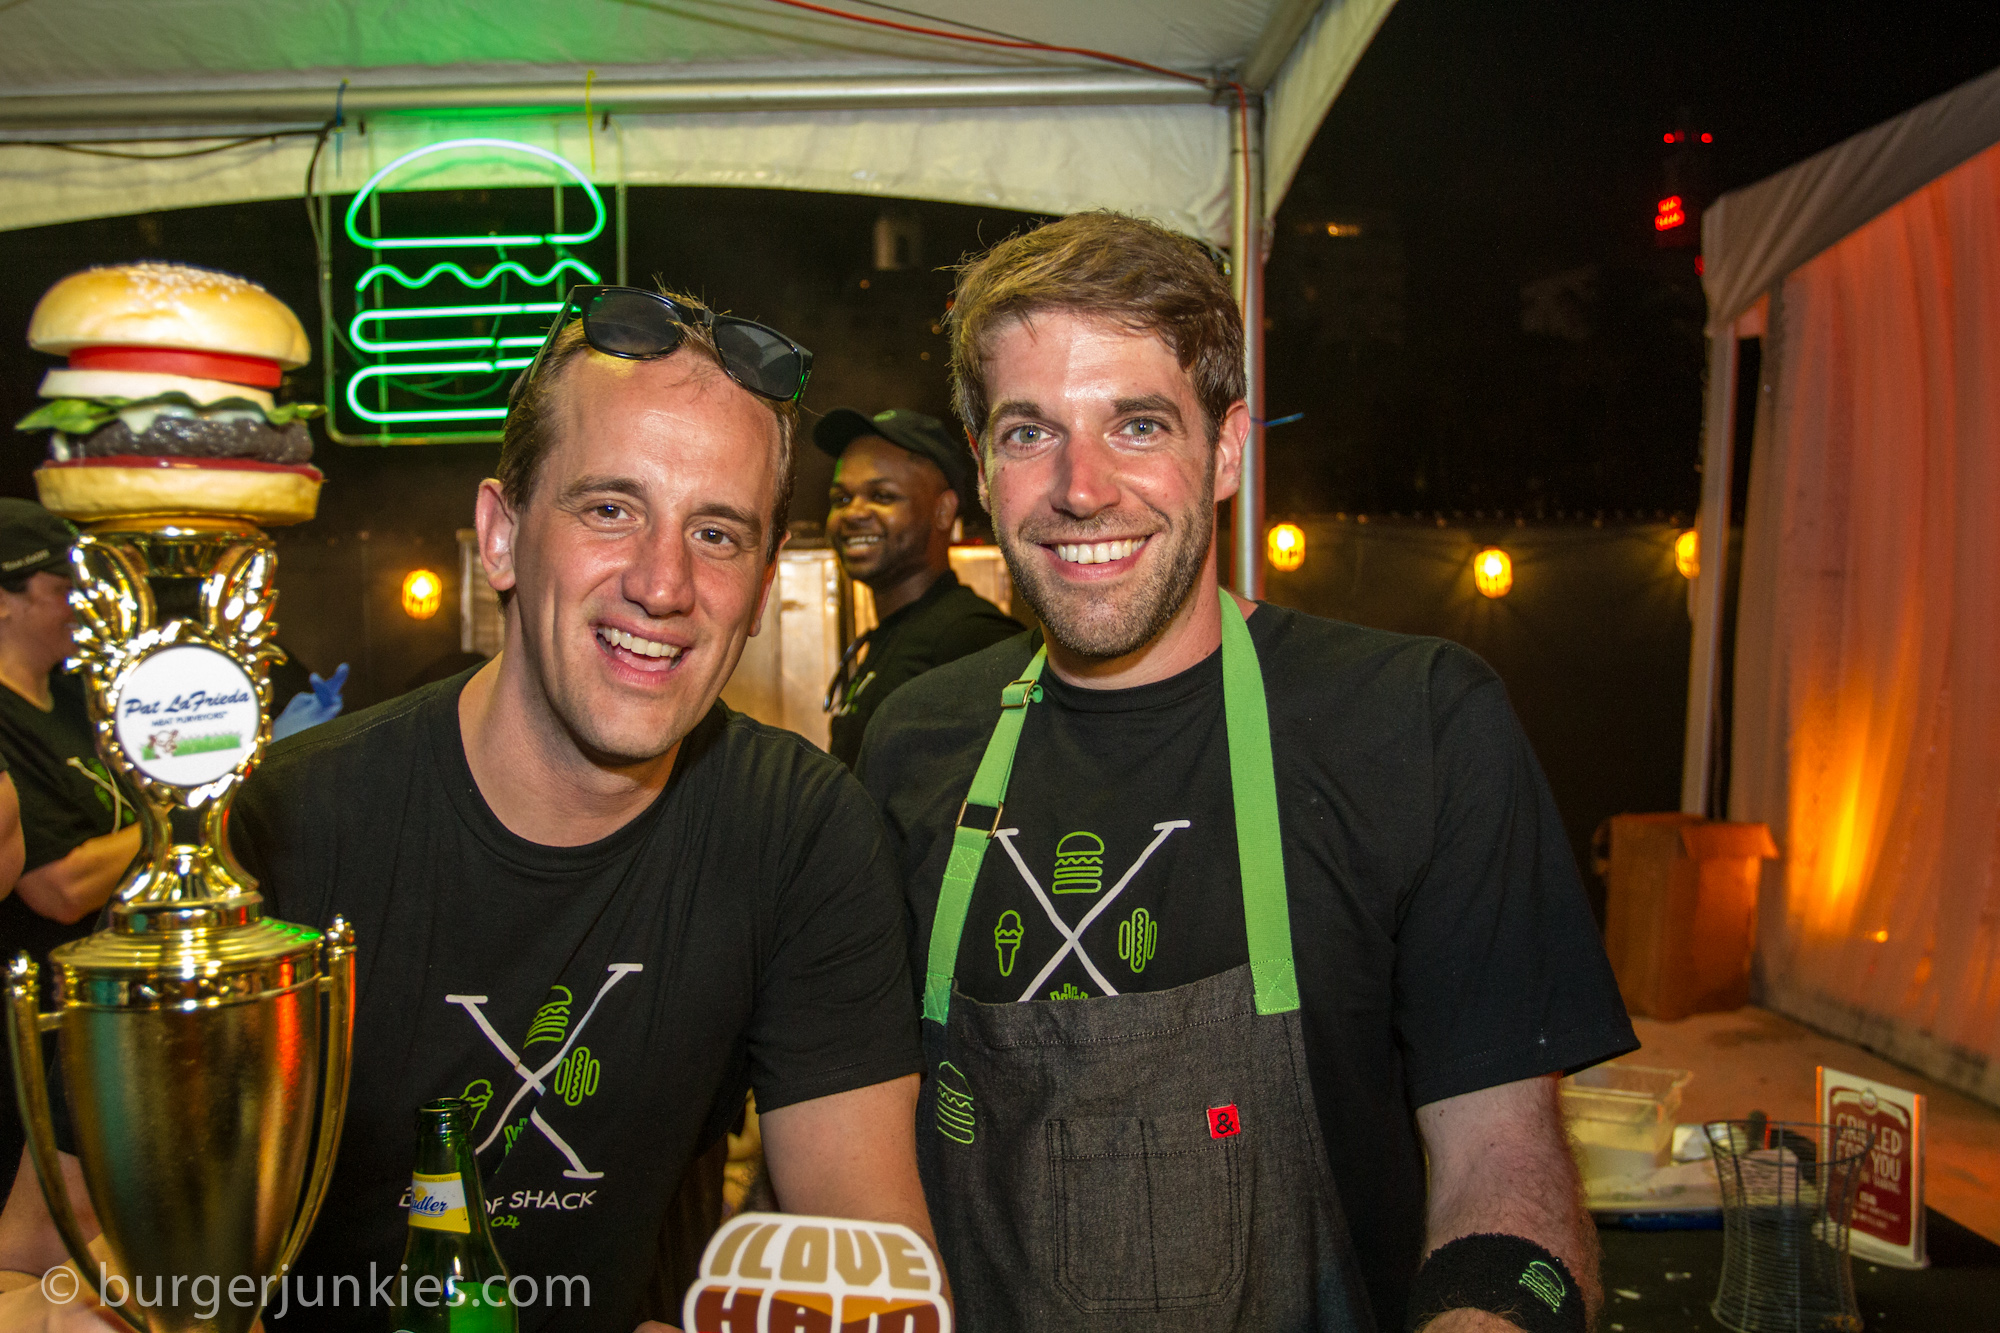 Shake Shack wins Judges Choice at the 2014 Amstel Light #SOBEWFF BURGER BASH